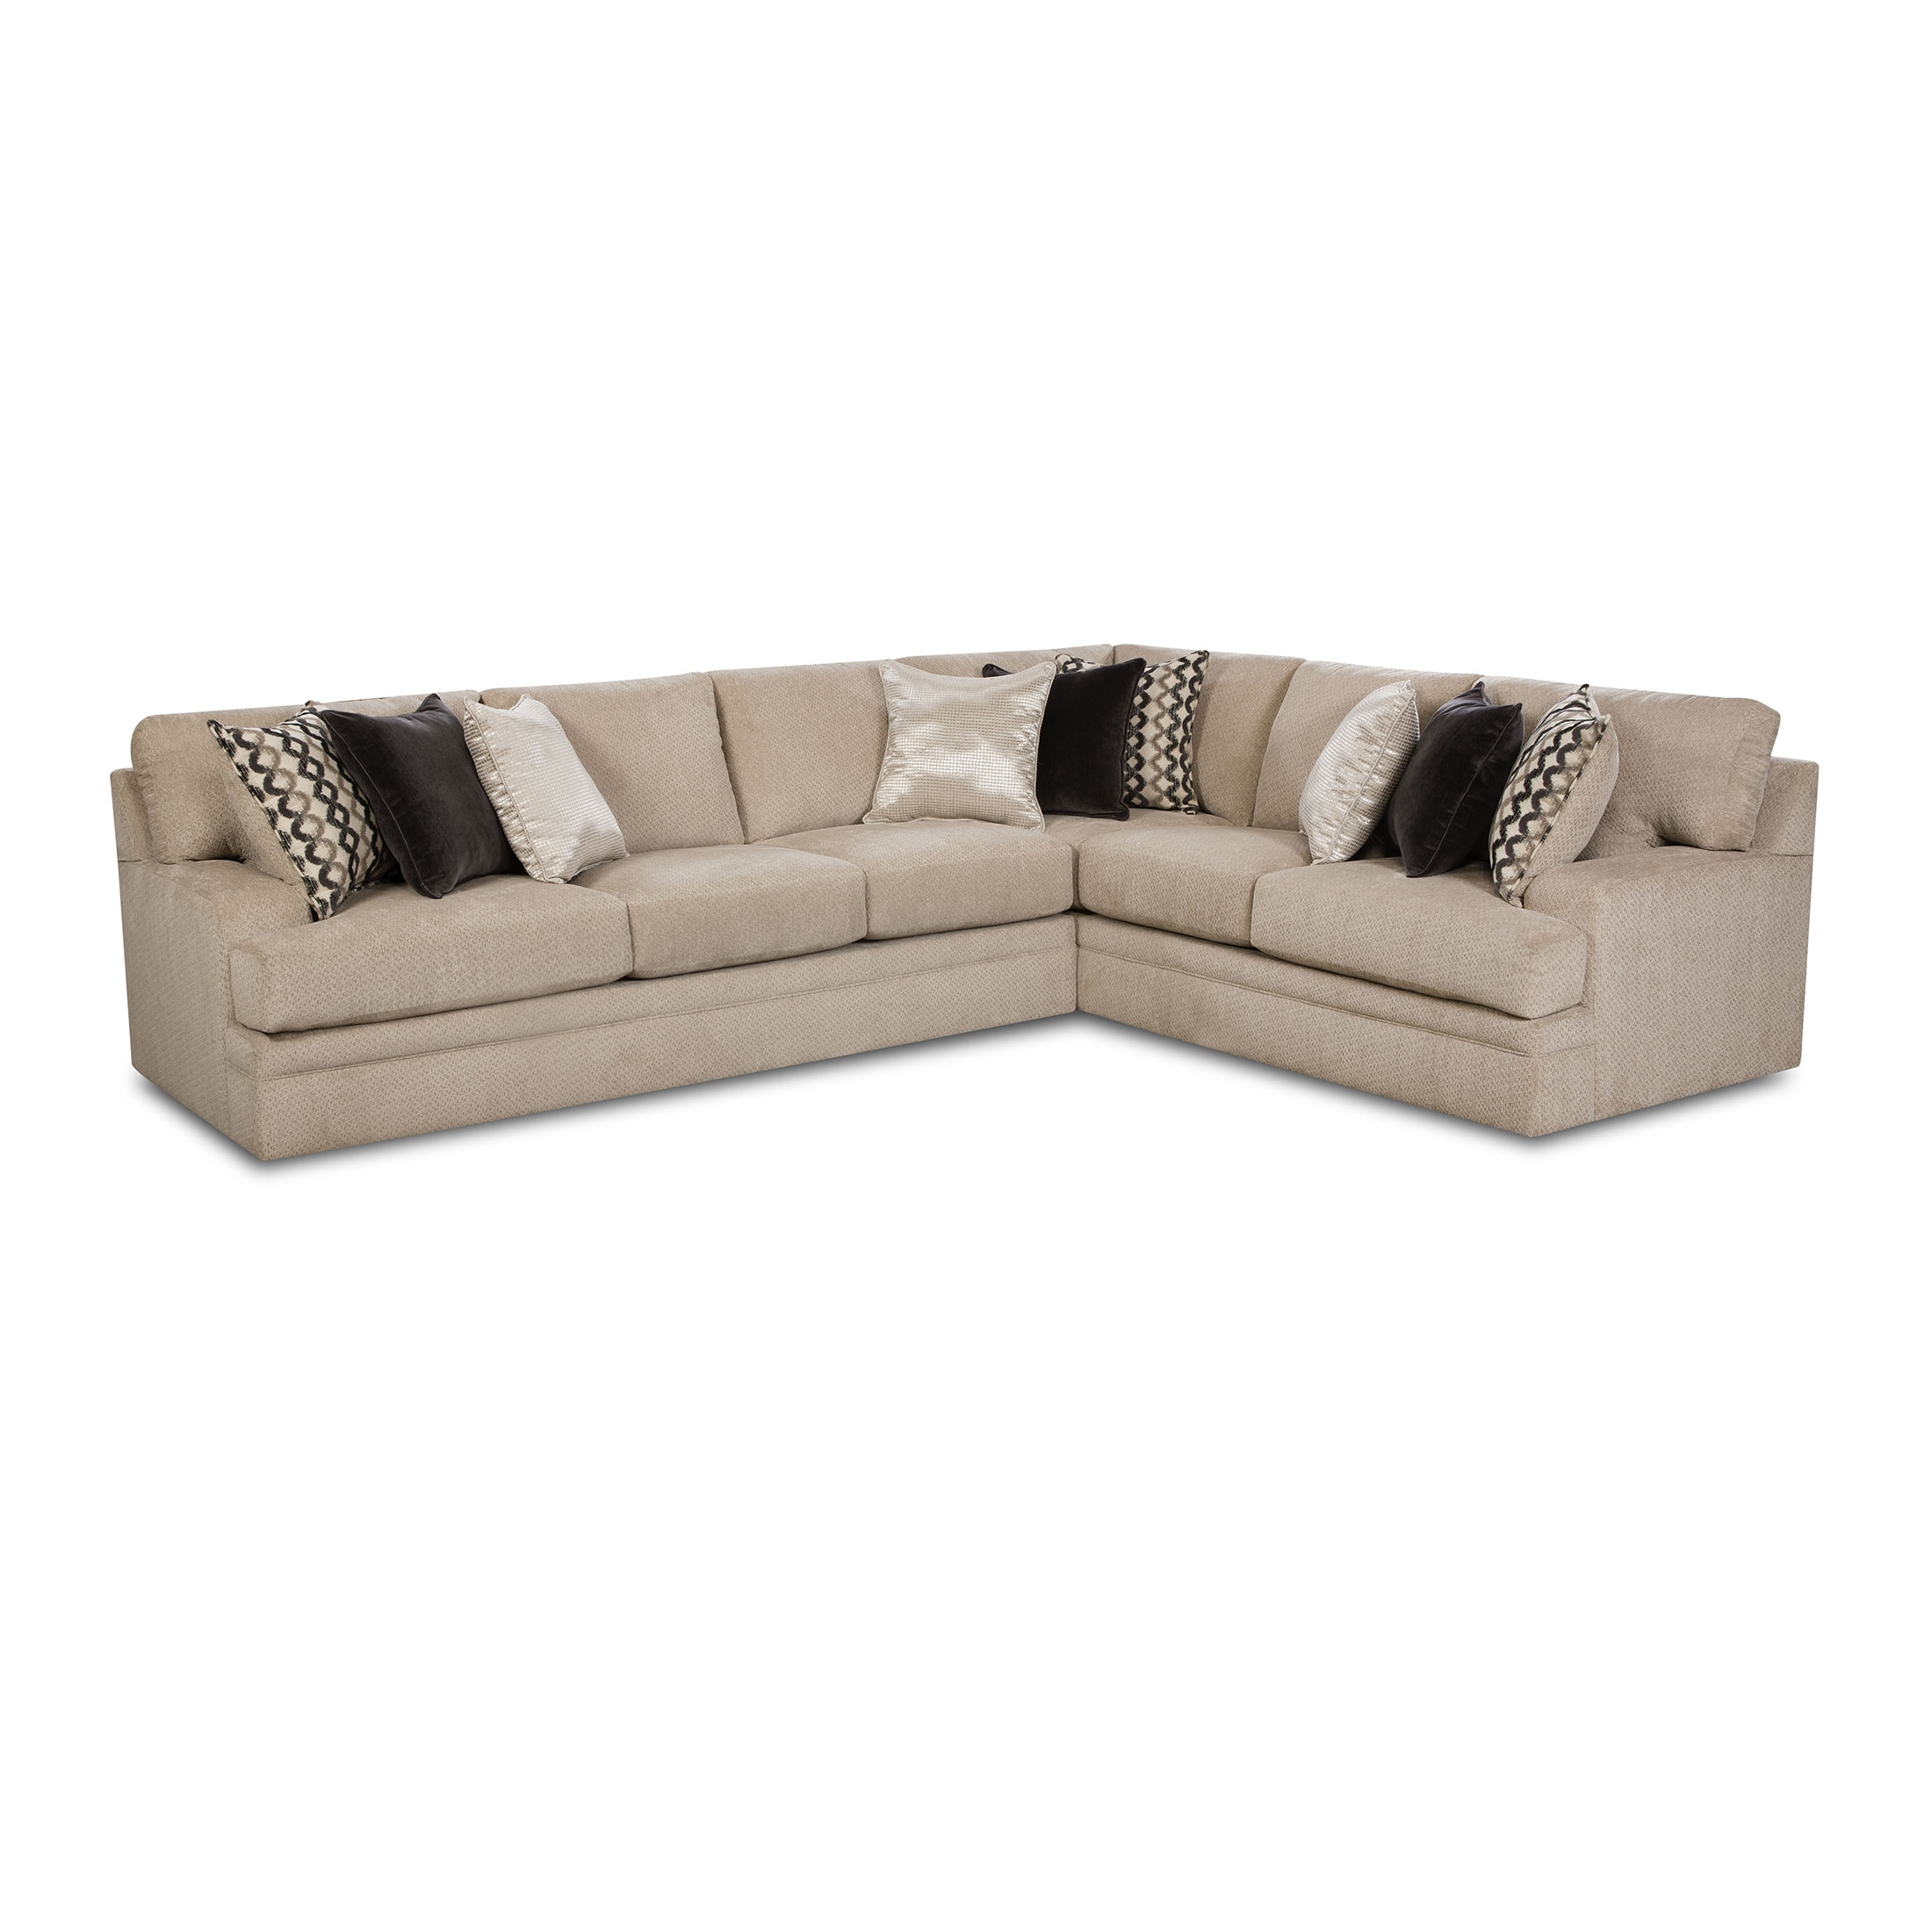 Shop Simmons Upholstery Bellamy Putty Sectional with ottoman - Free ...